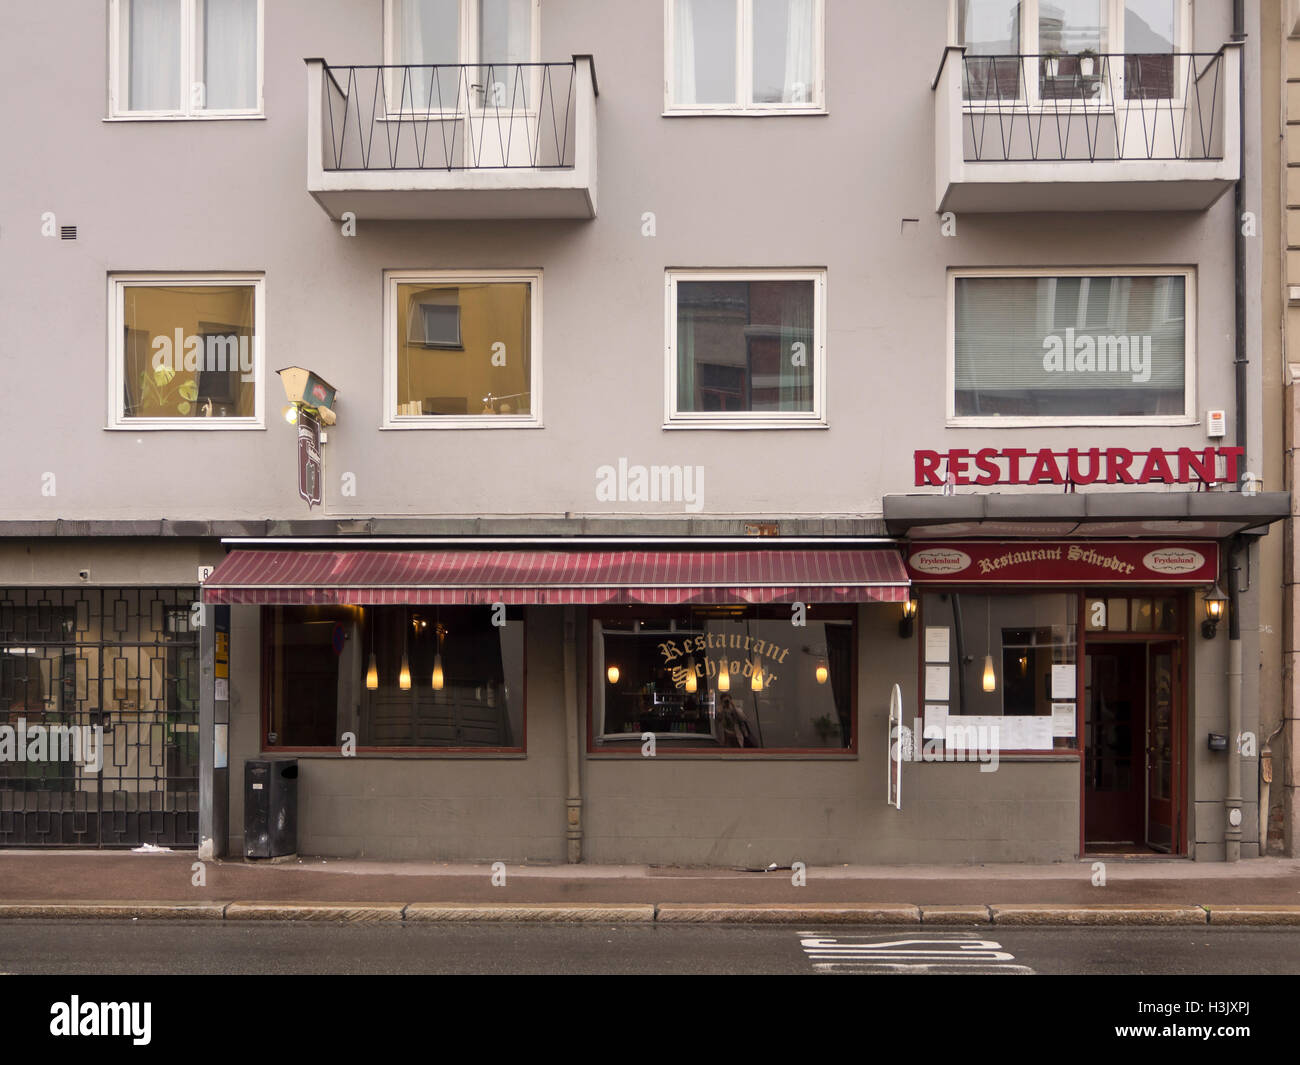 Restaurant Schrøder in Oslo traditional beer stop and favorite of the detective Harry Hole in Jon Nesbø - Stock Image